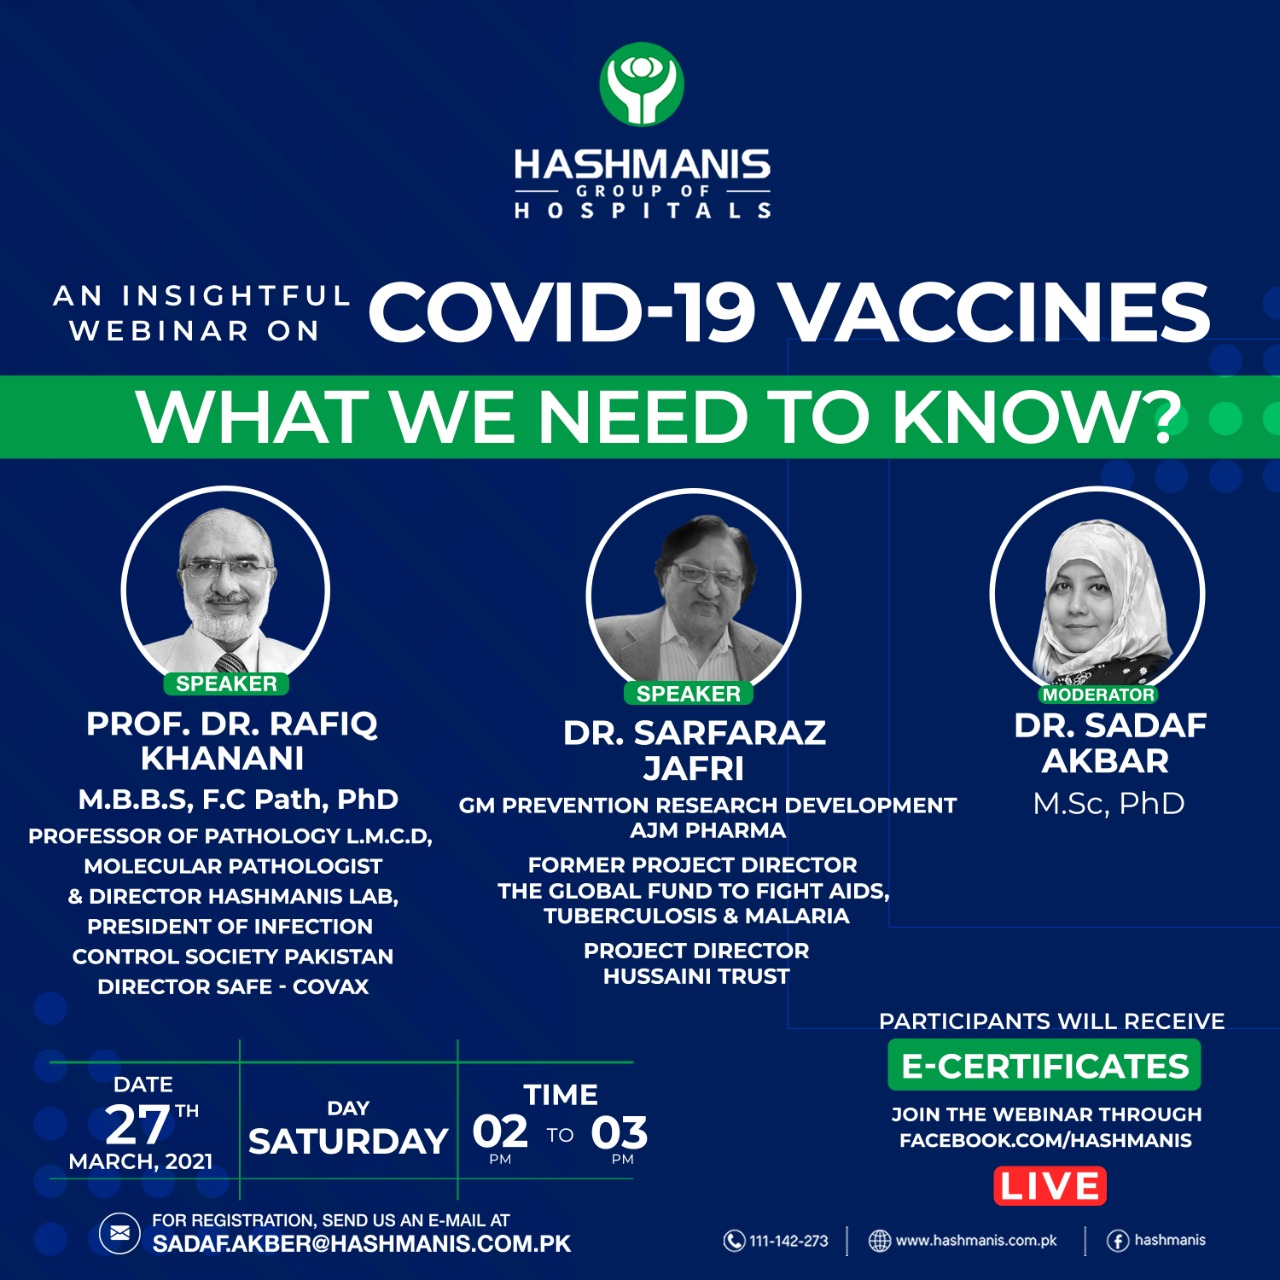 Covid-19 Vaccines - What We Need to Know